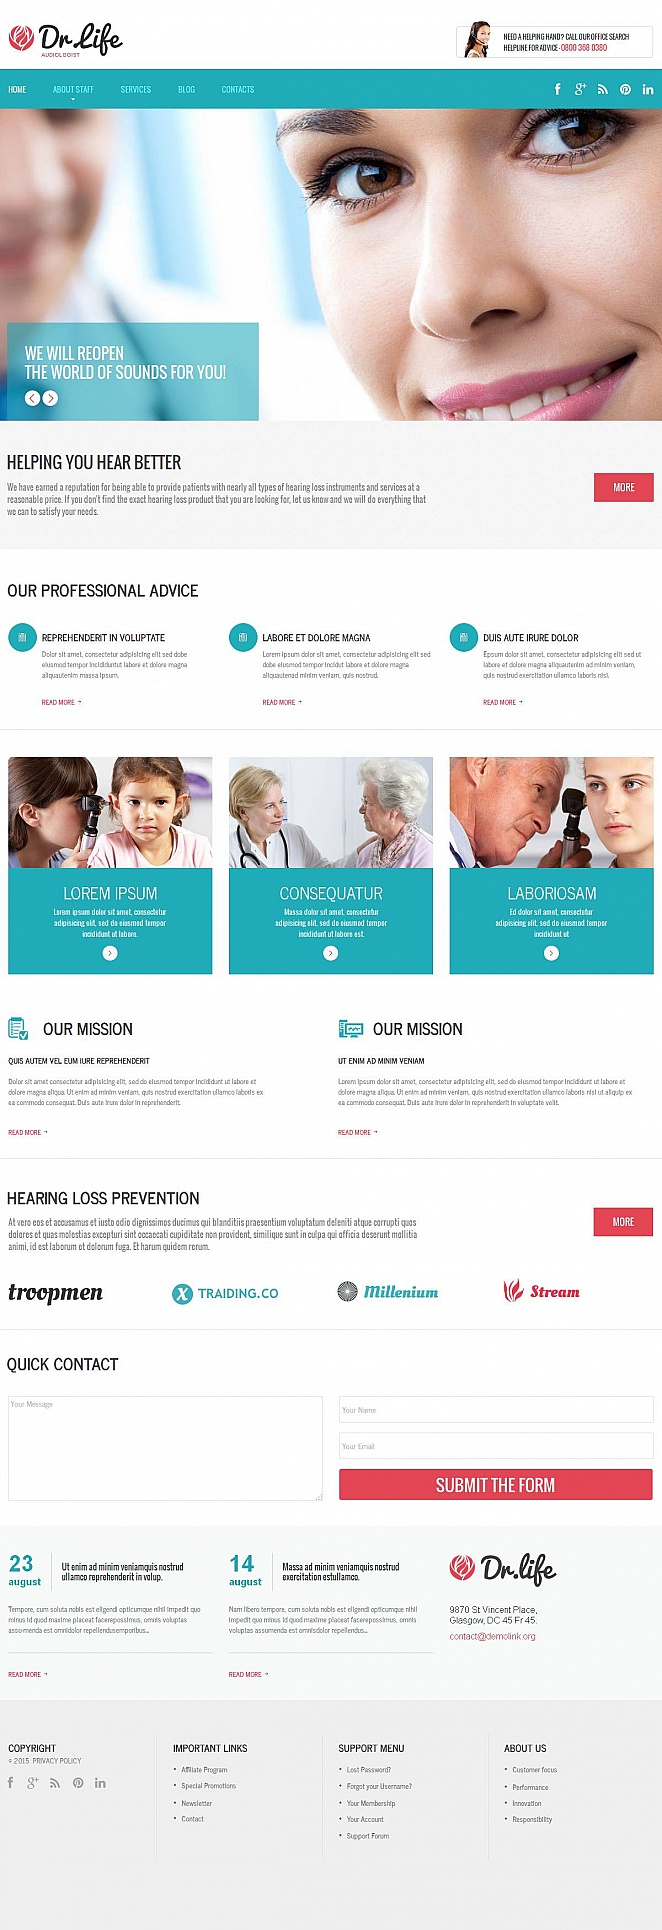 Audiology Website Template for Doctors - image